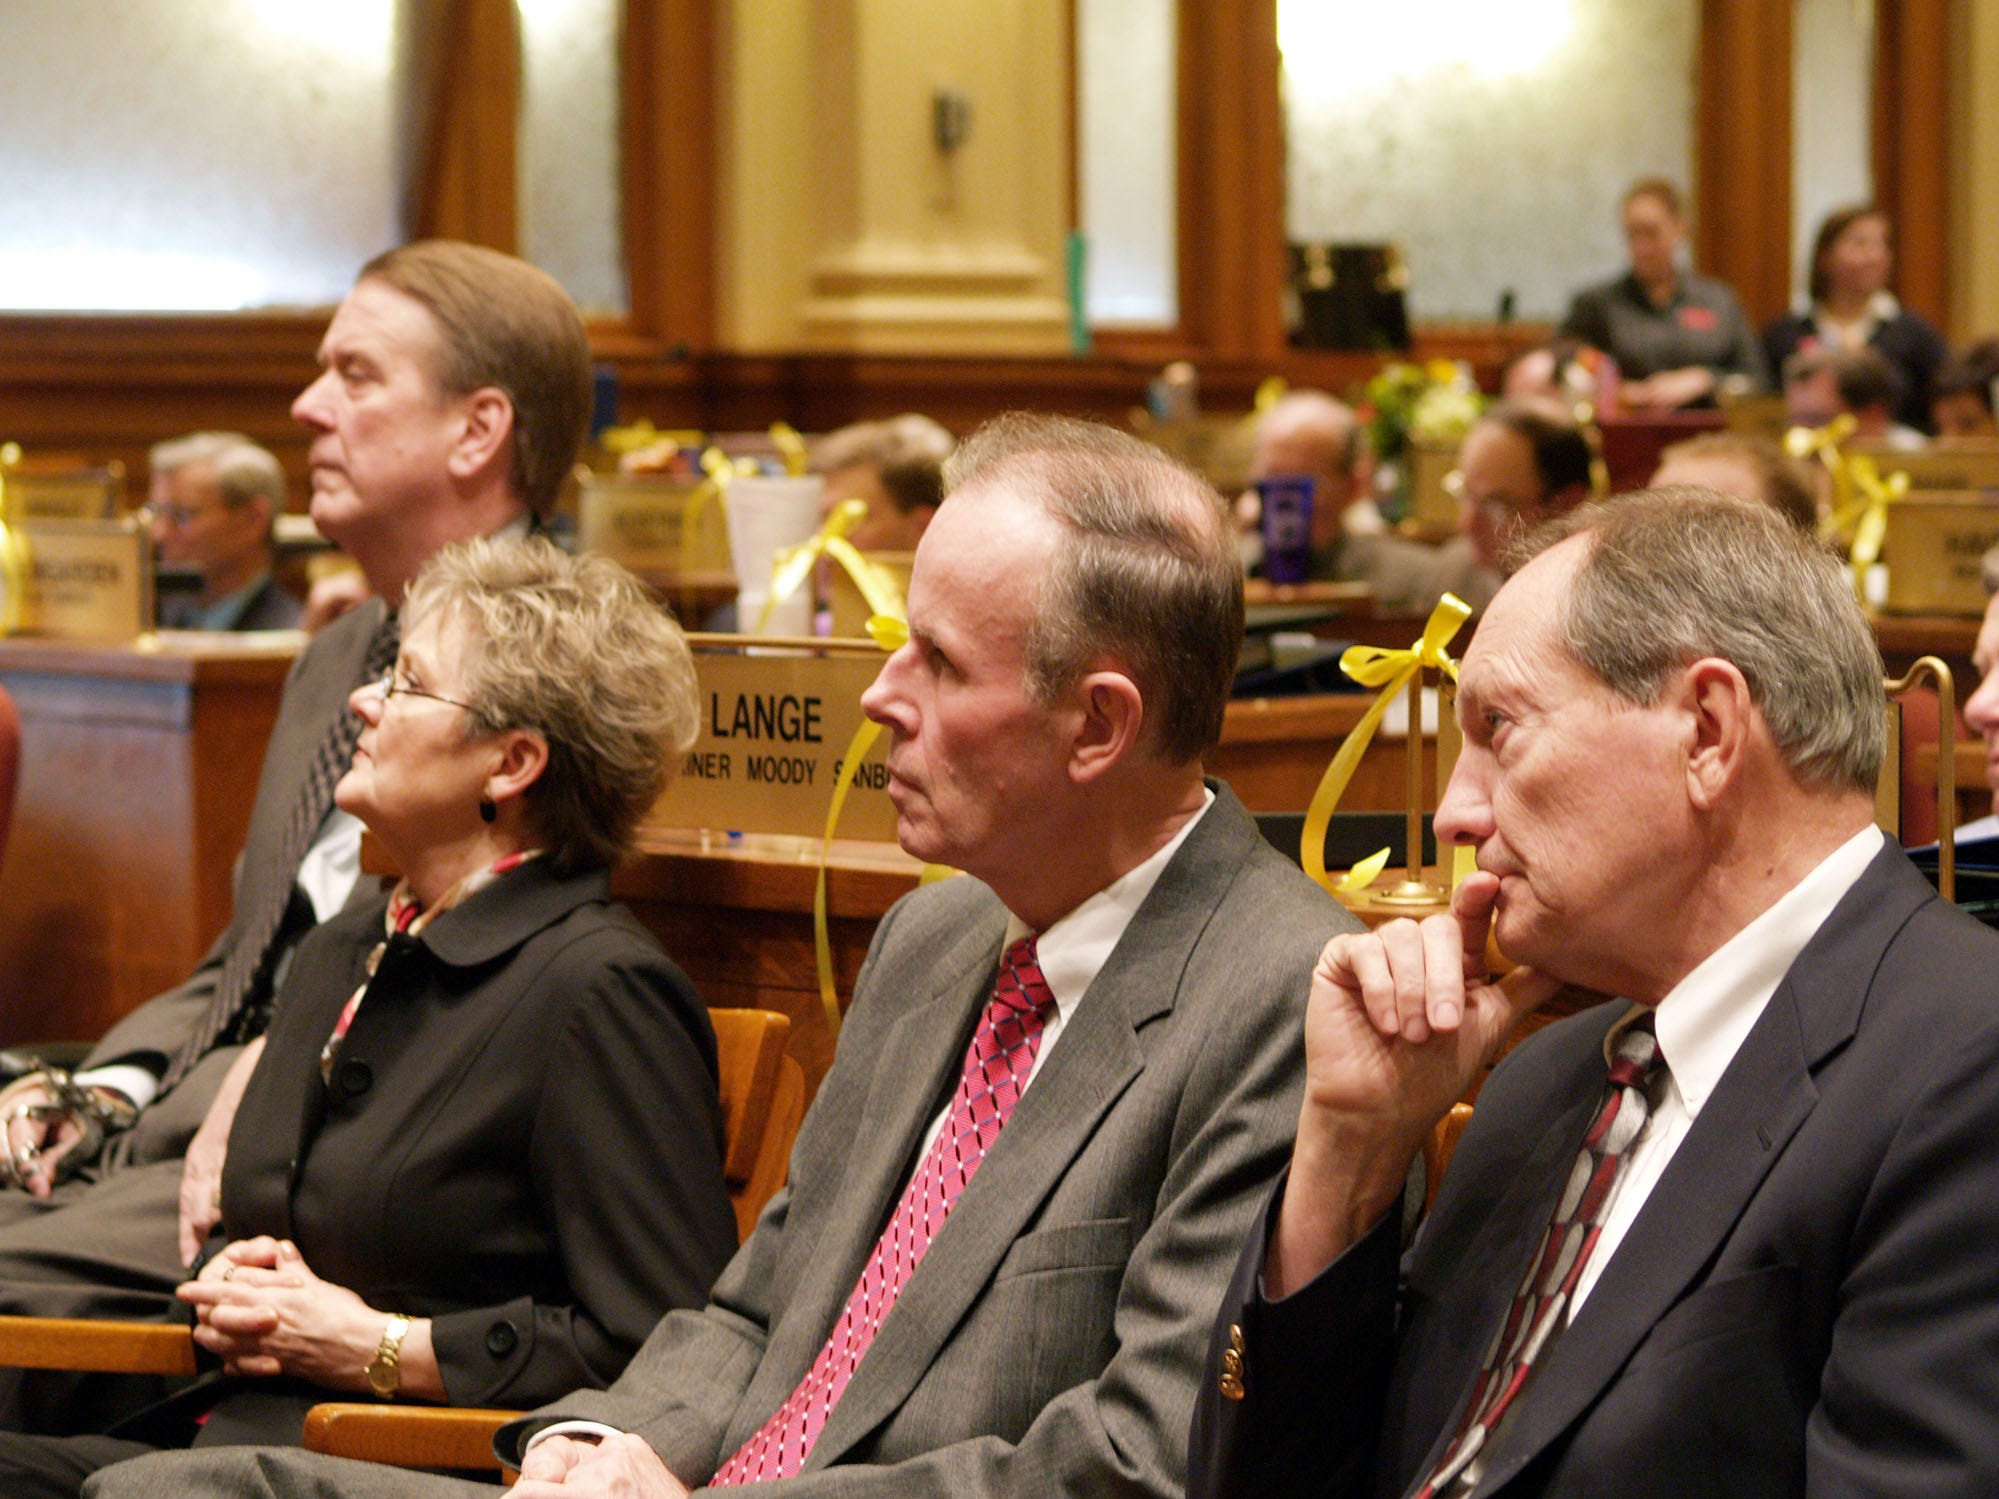 Supreme Court justices listen on Wednesday, Jan. 11, 2006, in the Statehouse in Pierre, S.D., as Chief Justice David Gilbertson gives his annual State of the Judiciary speech to the Legislature. From right are, Justices Richard W. Sabers, John K. Konenkamp, Judith Meierheny and Steven L. Zinter. (AP Photo/Joe Kafka)